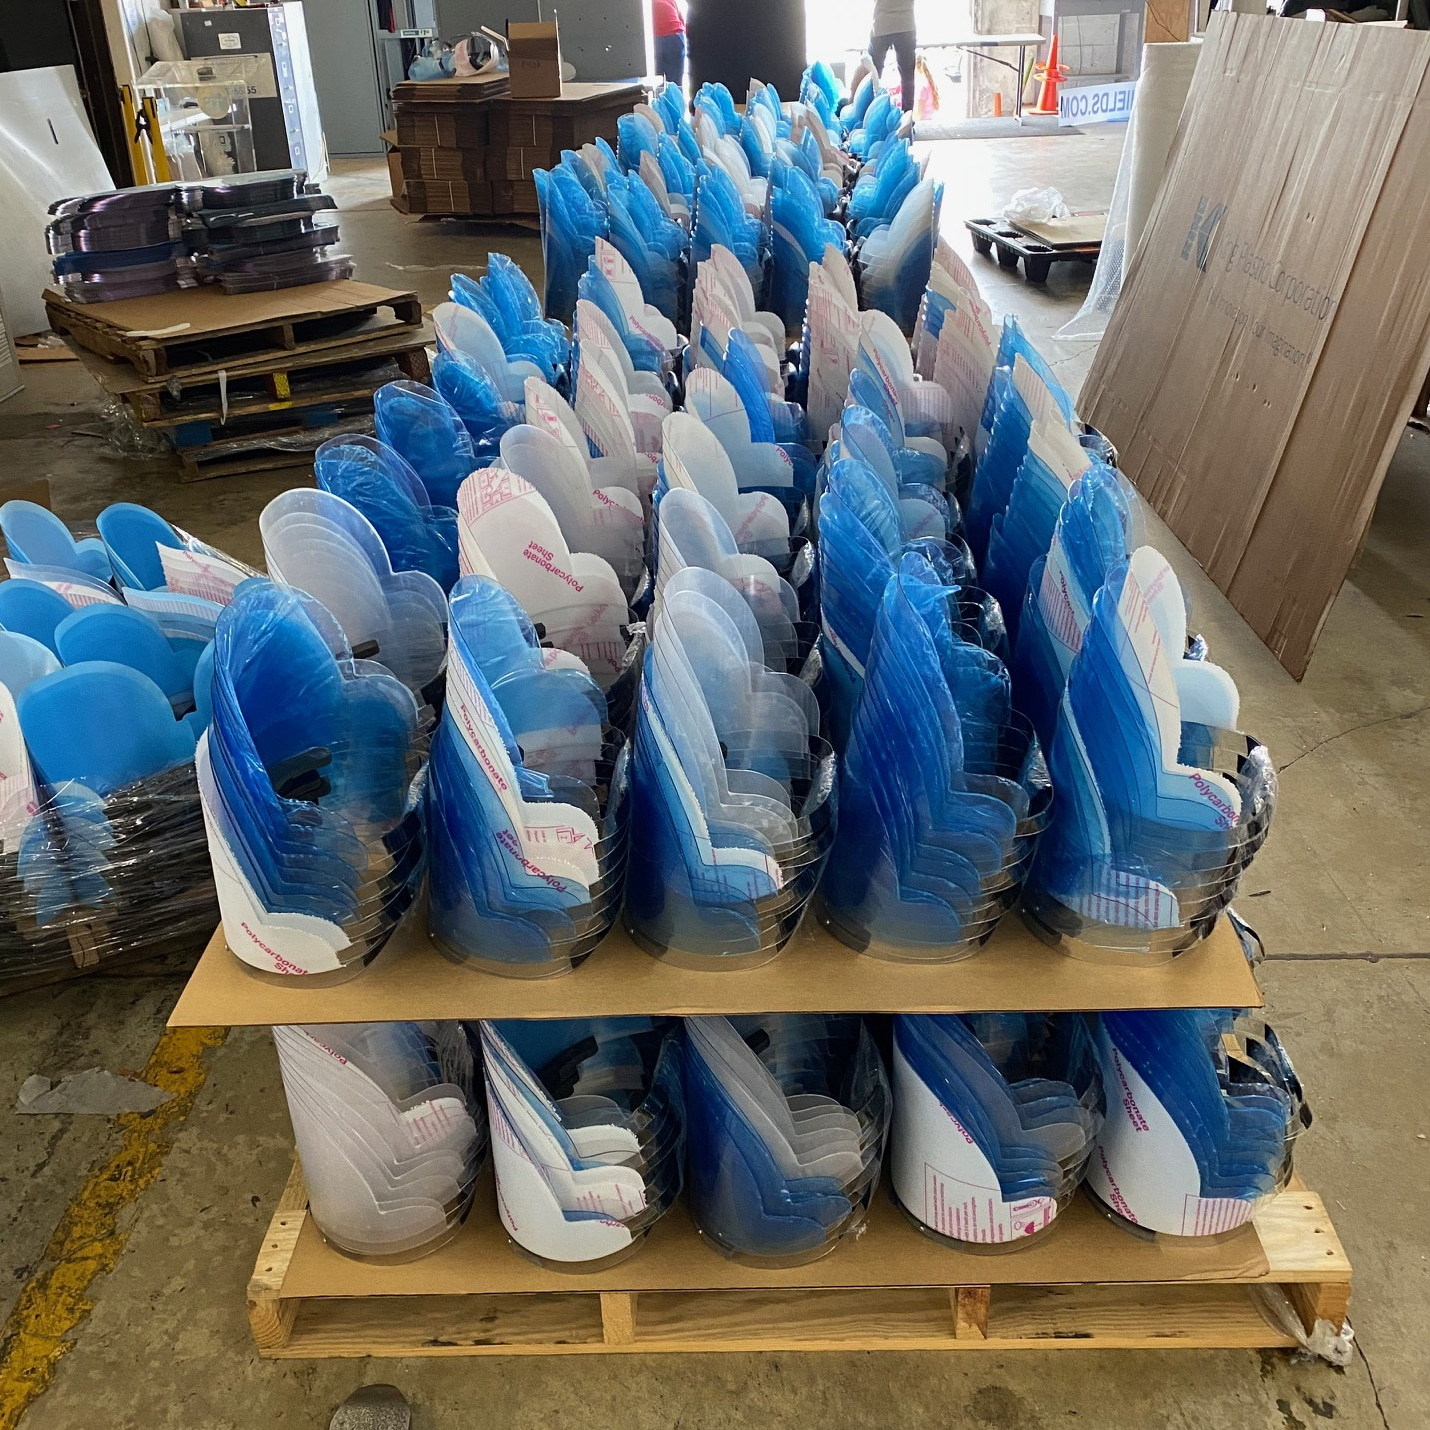 Stacks of plastic face shields made by Faulkner Plastics at their warehouse.